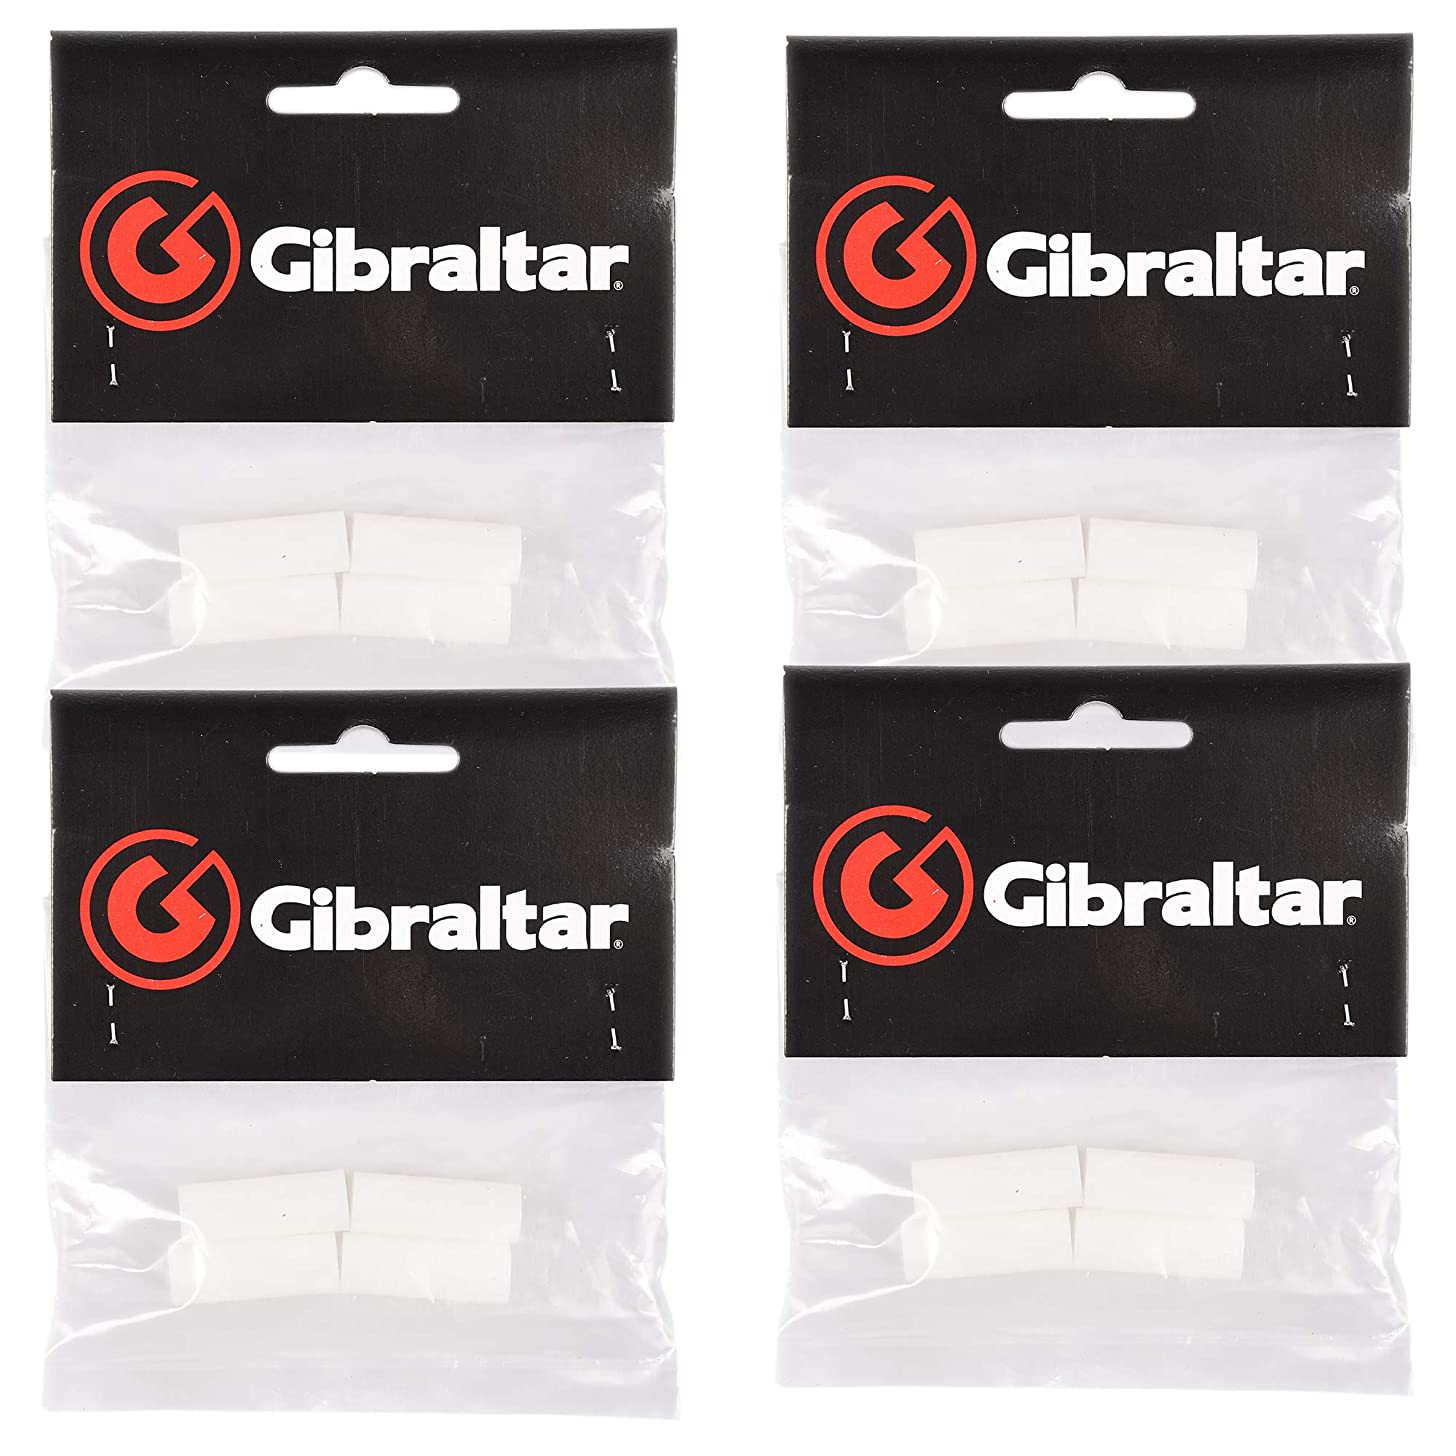 Gibraltar 6mm Cymbal Sleeve 16 Pack Bundle